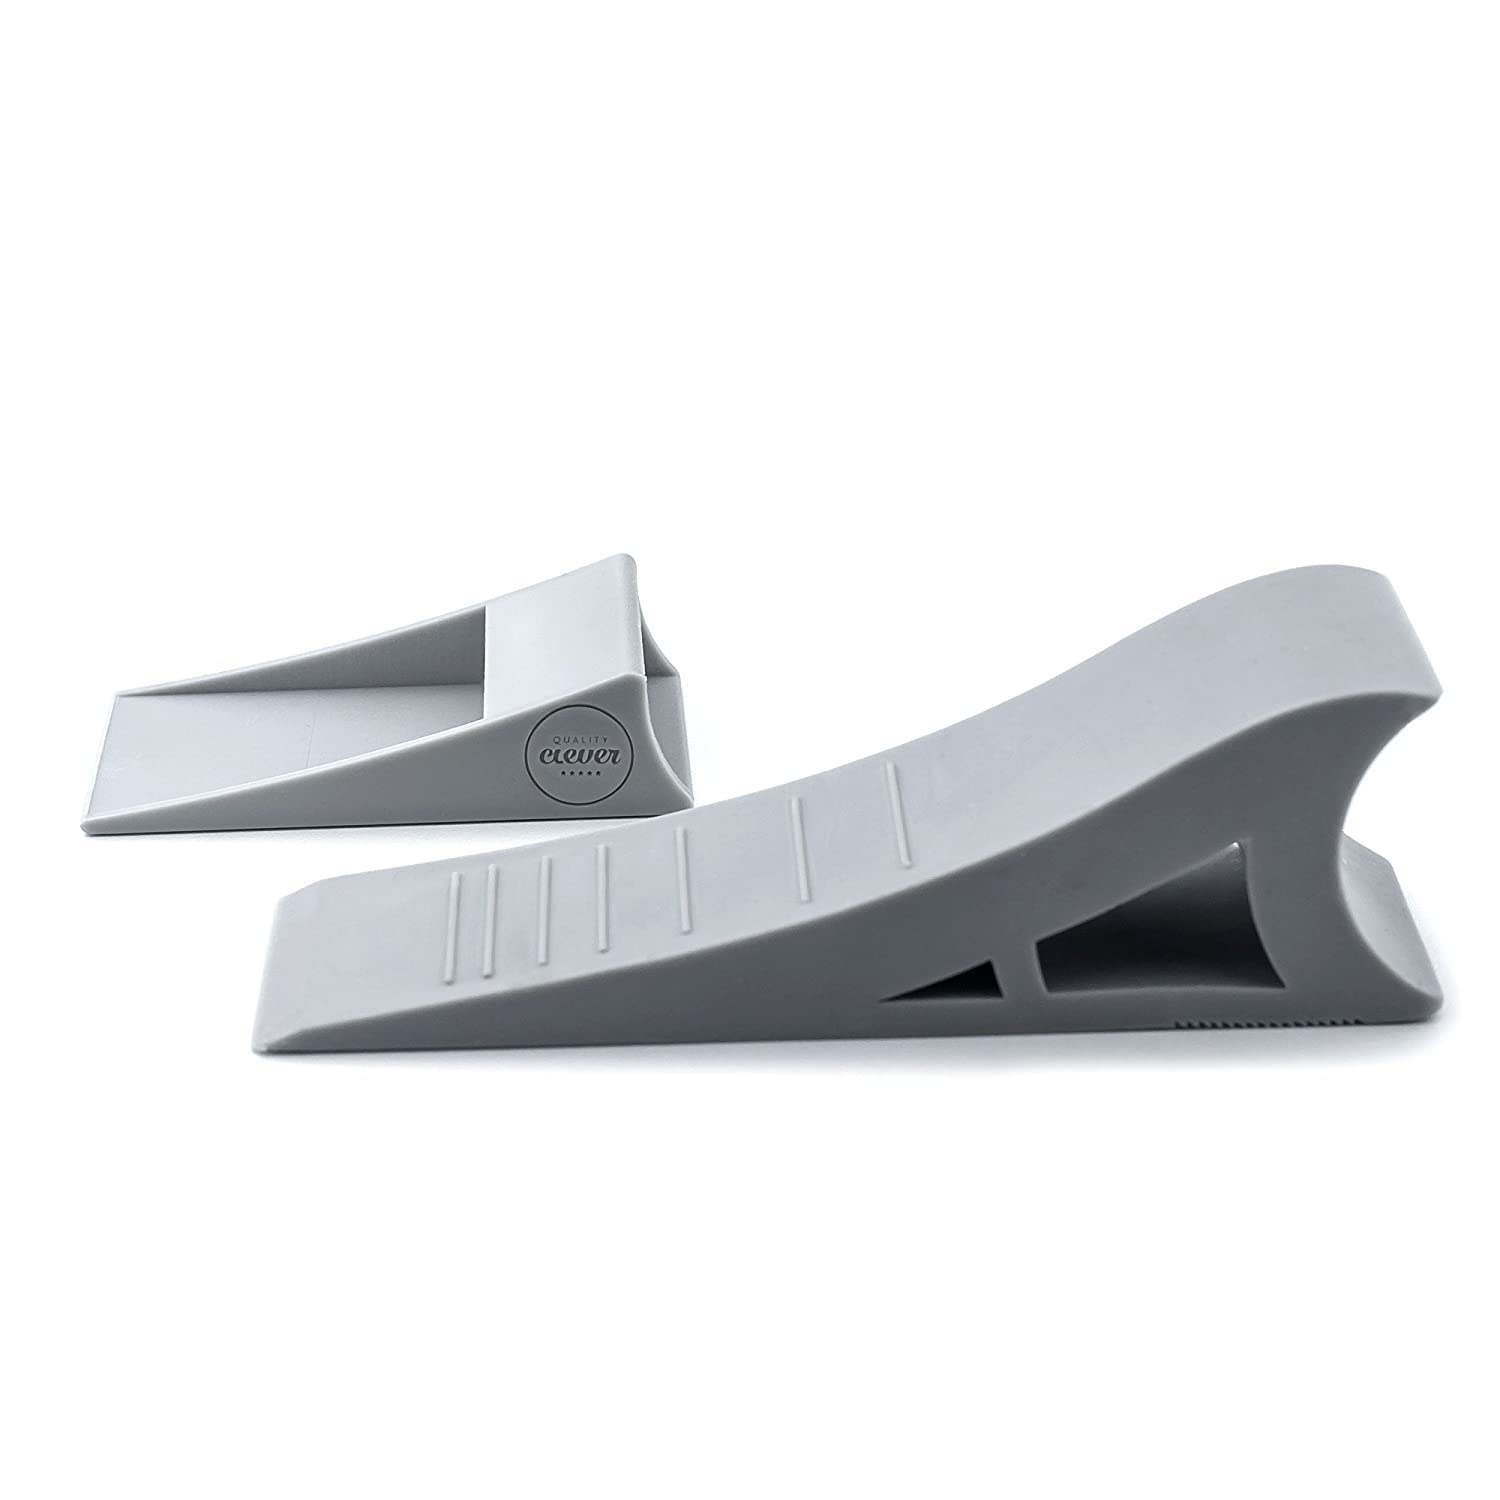 Quality Clever Door Stopper - (1 pack) - Non slide, Tall Rubber Wedge - Modern Design Doorstop